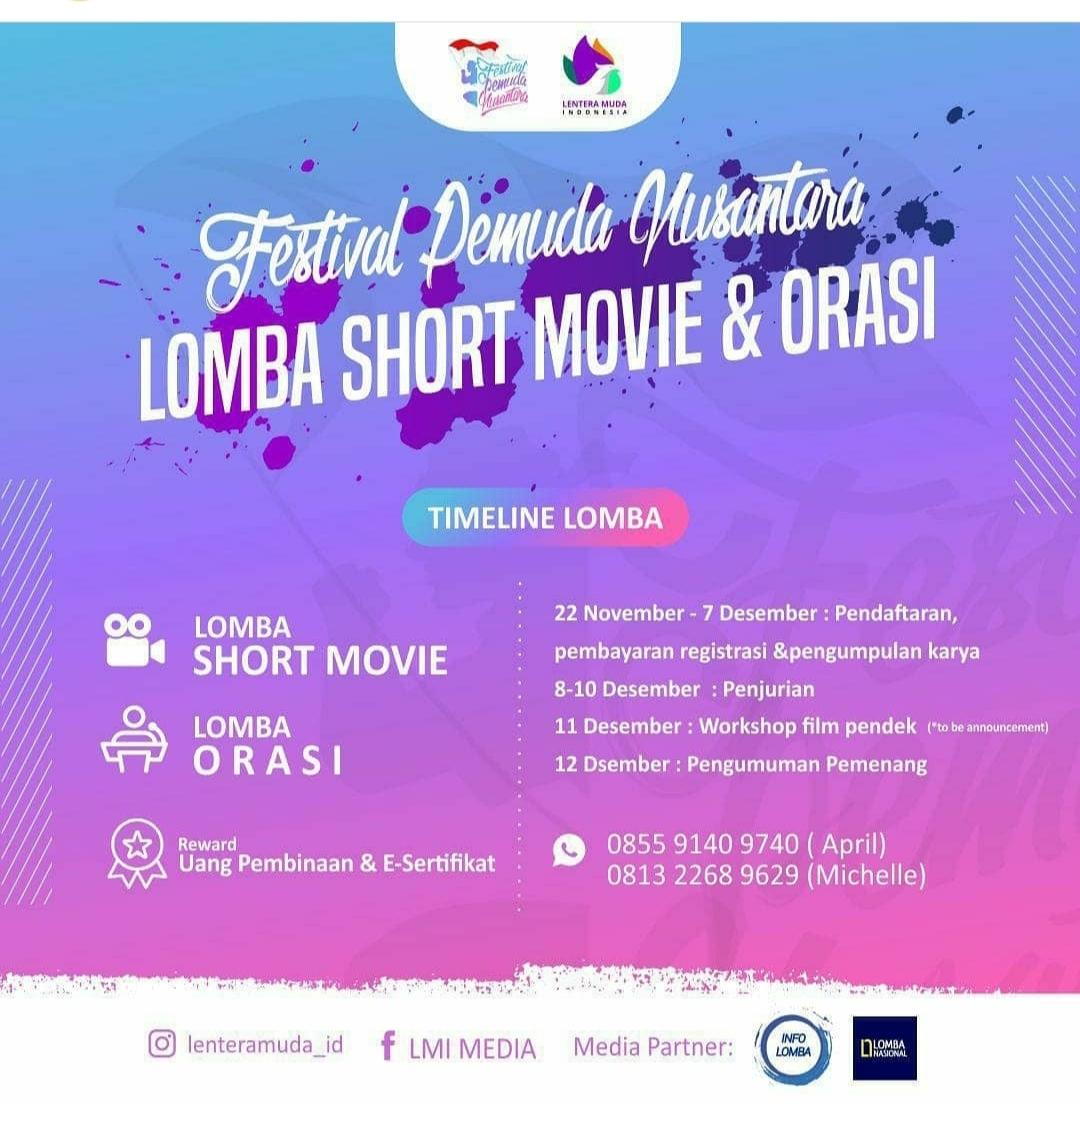 Festival Pemuda Nusantara: Lomba Short Movie dan Orasi